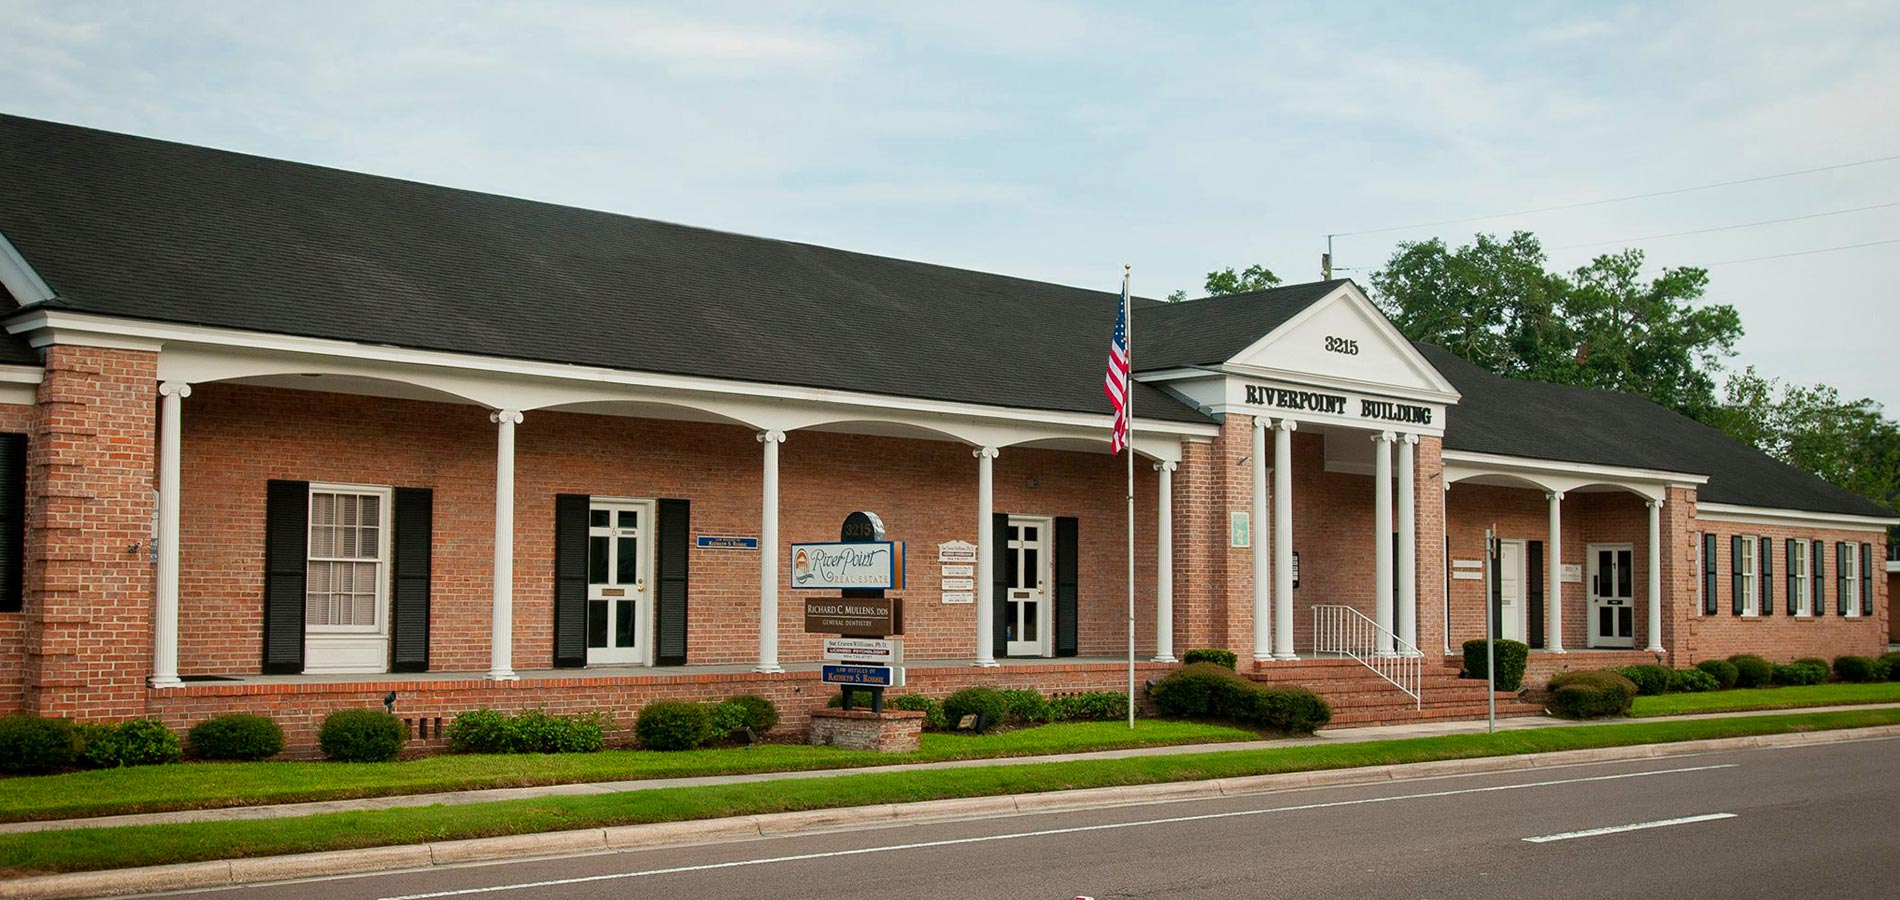 RiverPoint Real Estate office building in Jacksonville, FL